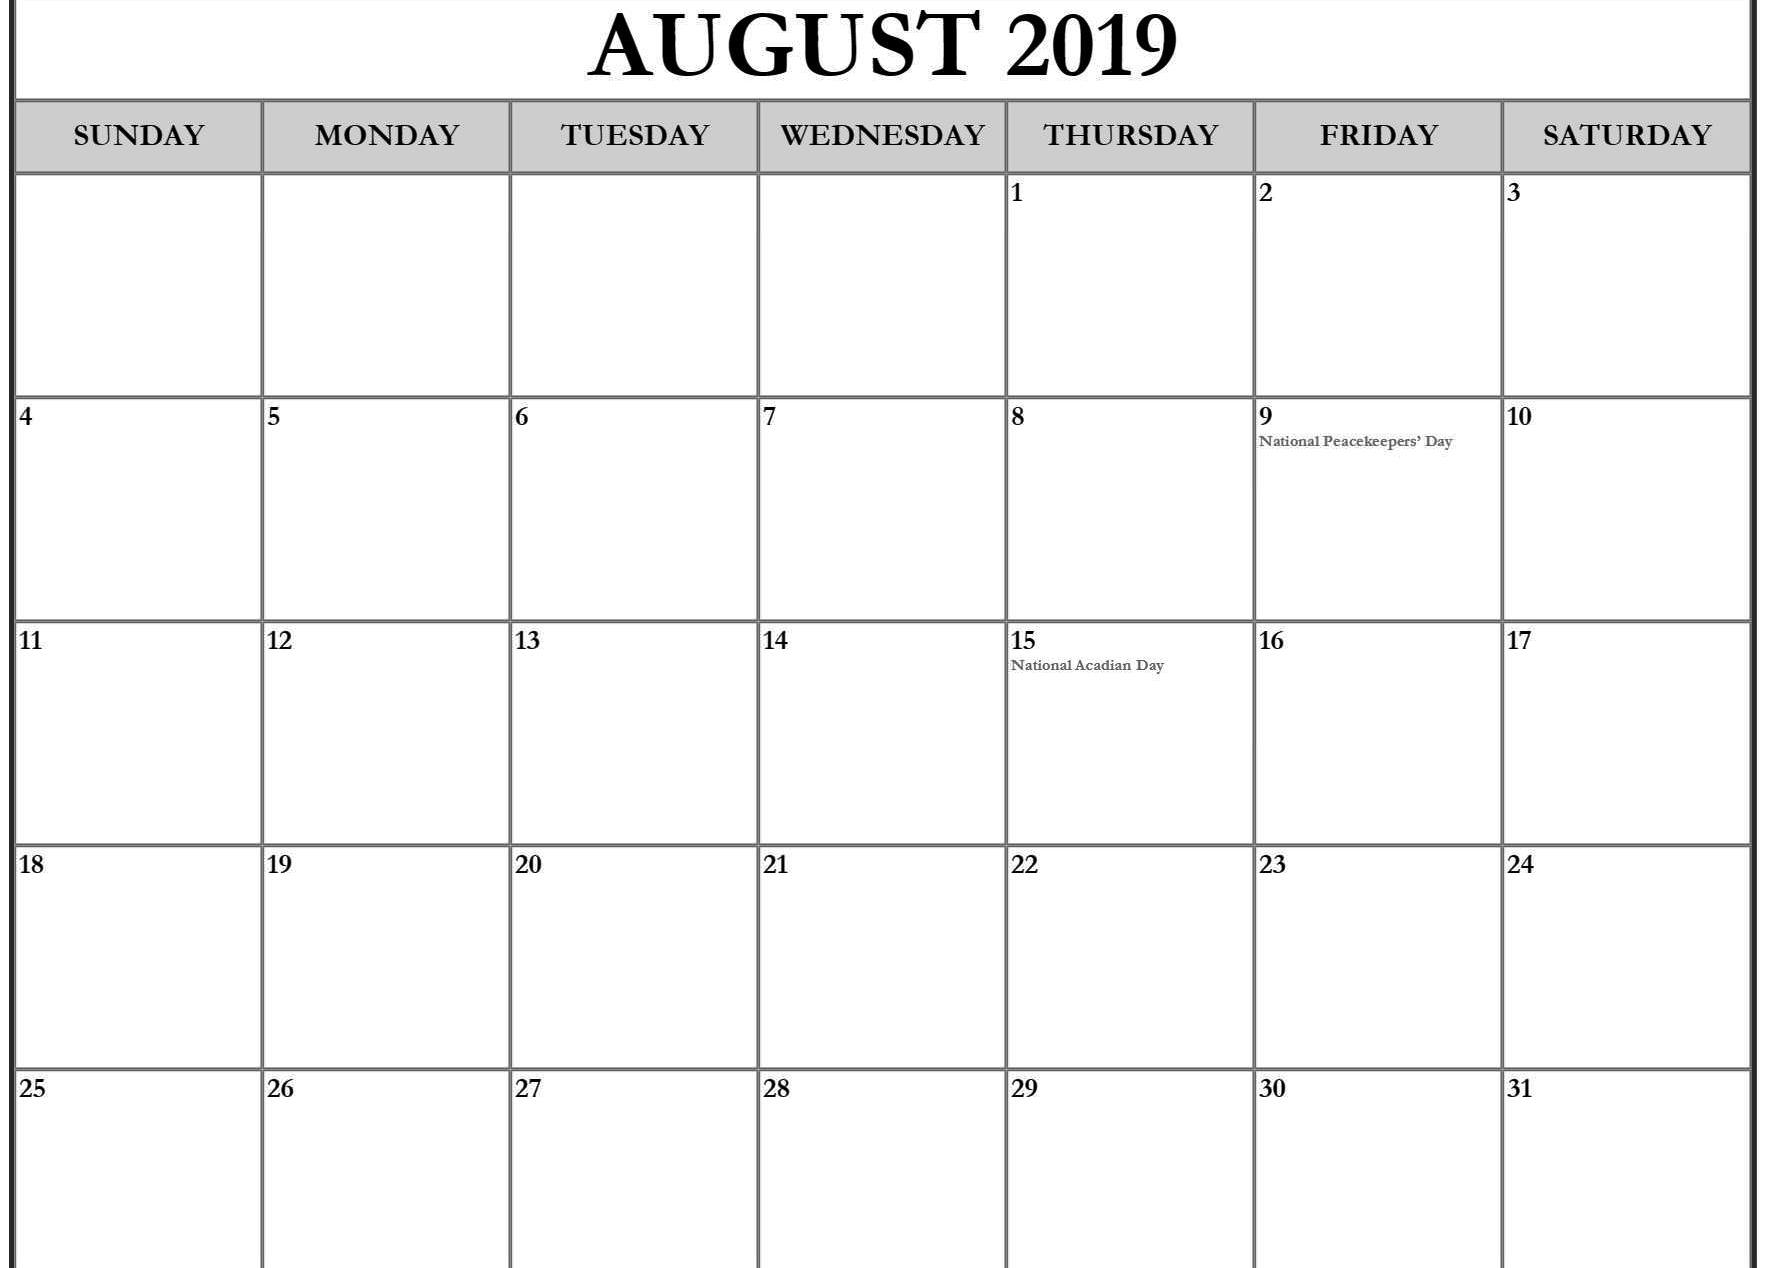 August 2019 Calendar Holidays Printable